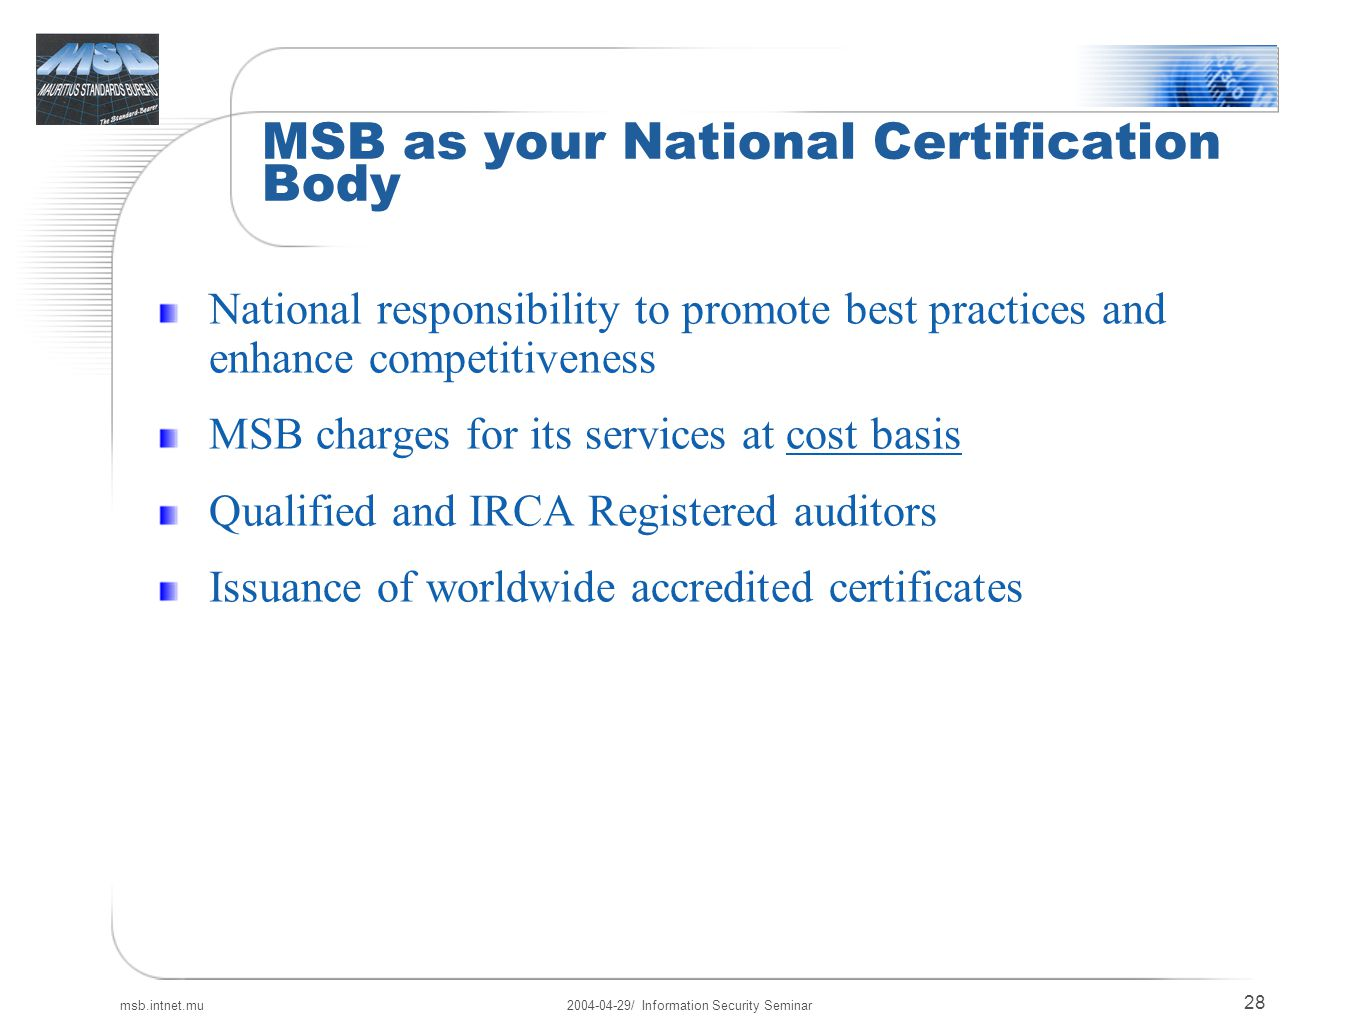 Information security seminar ppt download msb as your national certification body xflitez Images